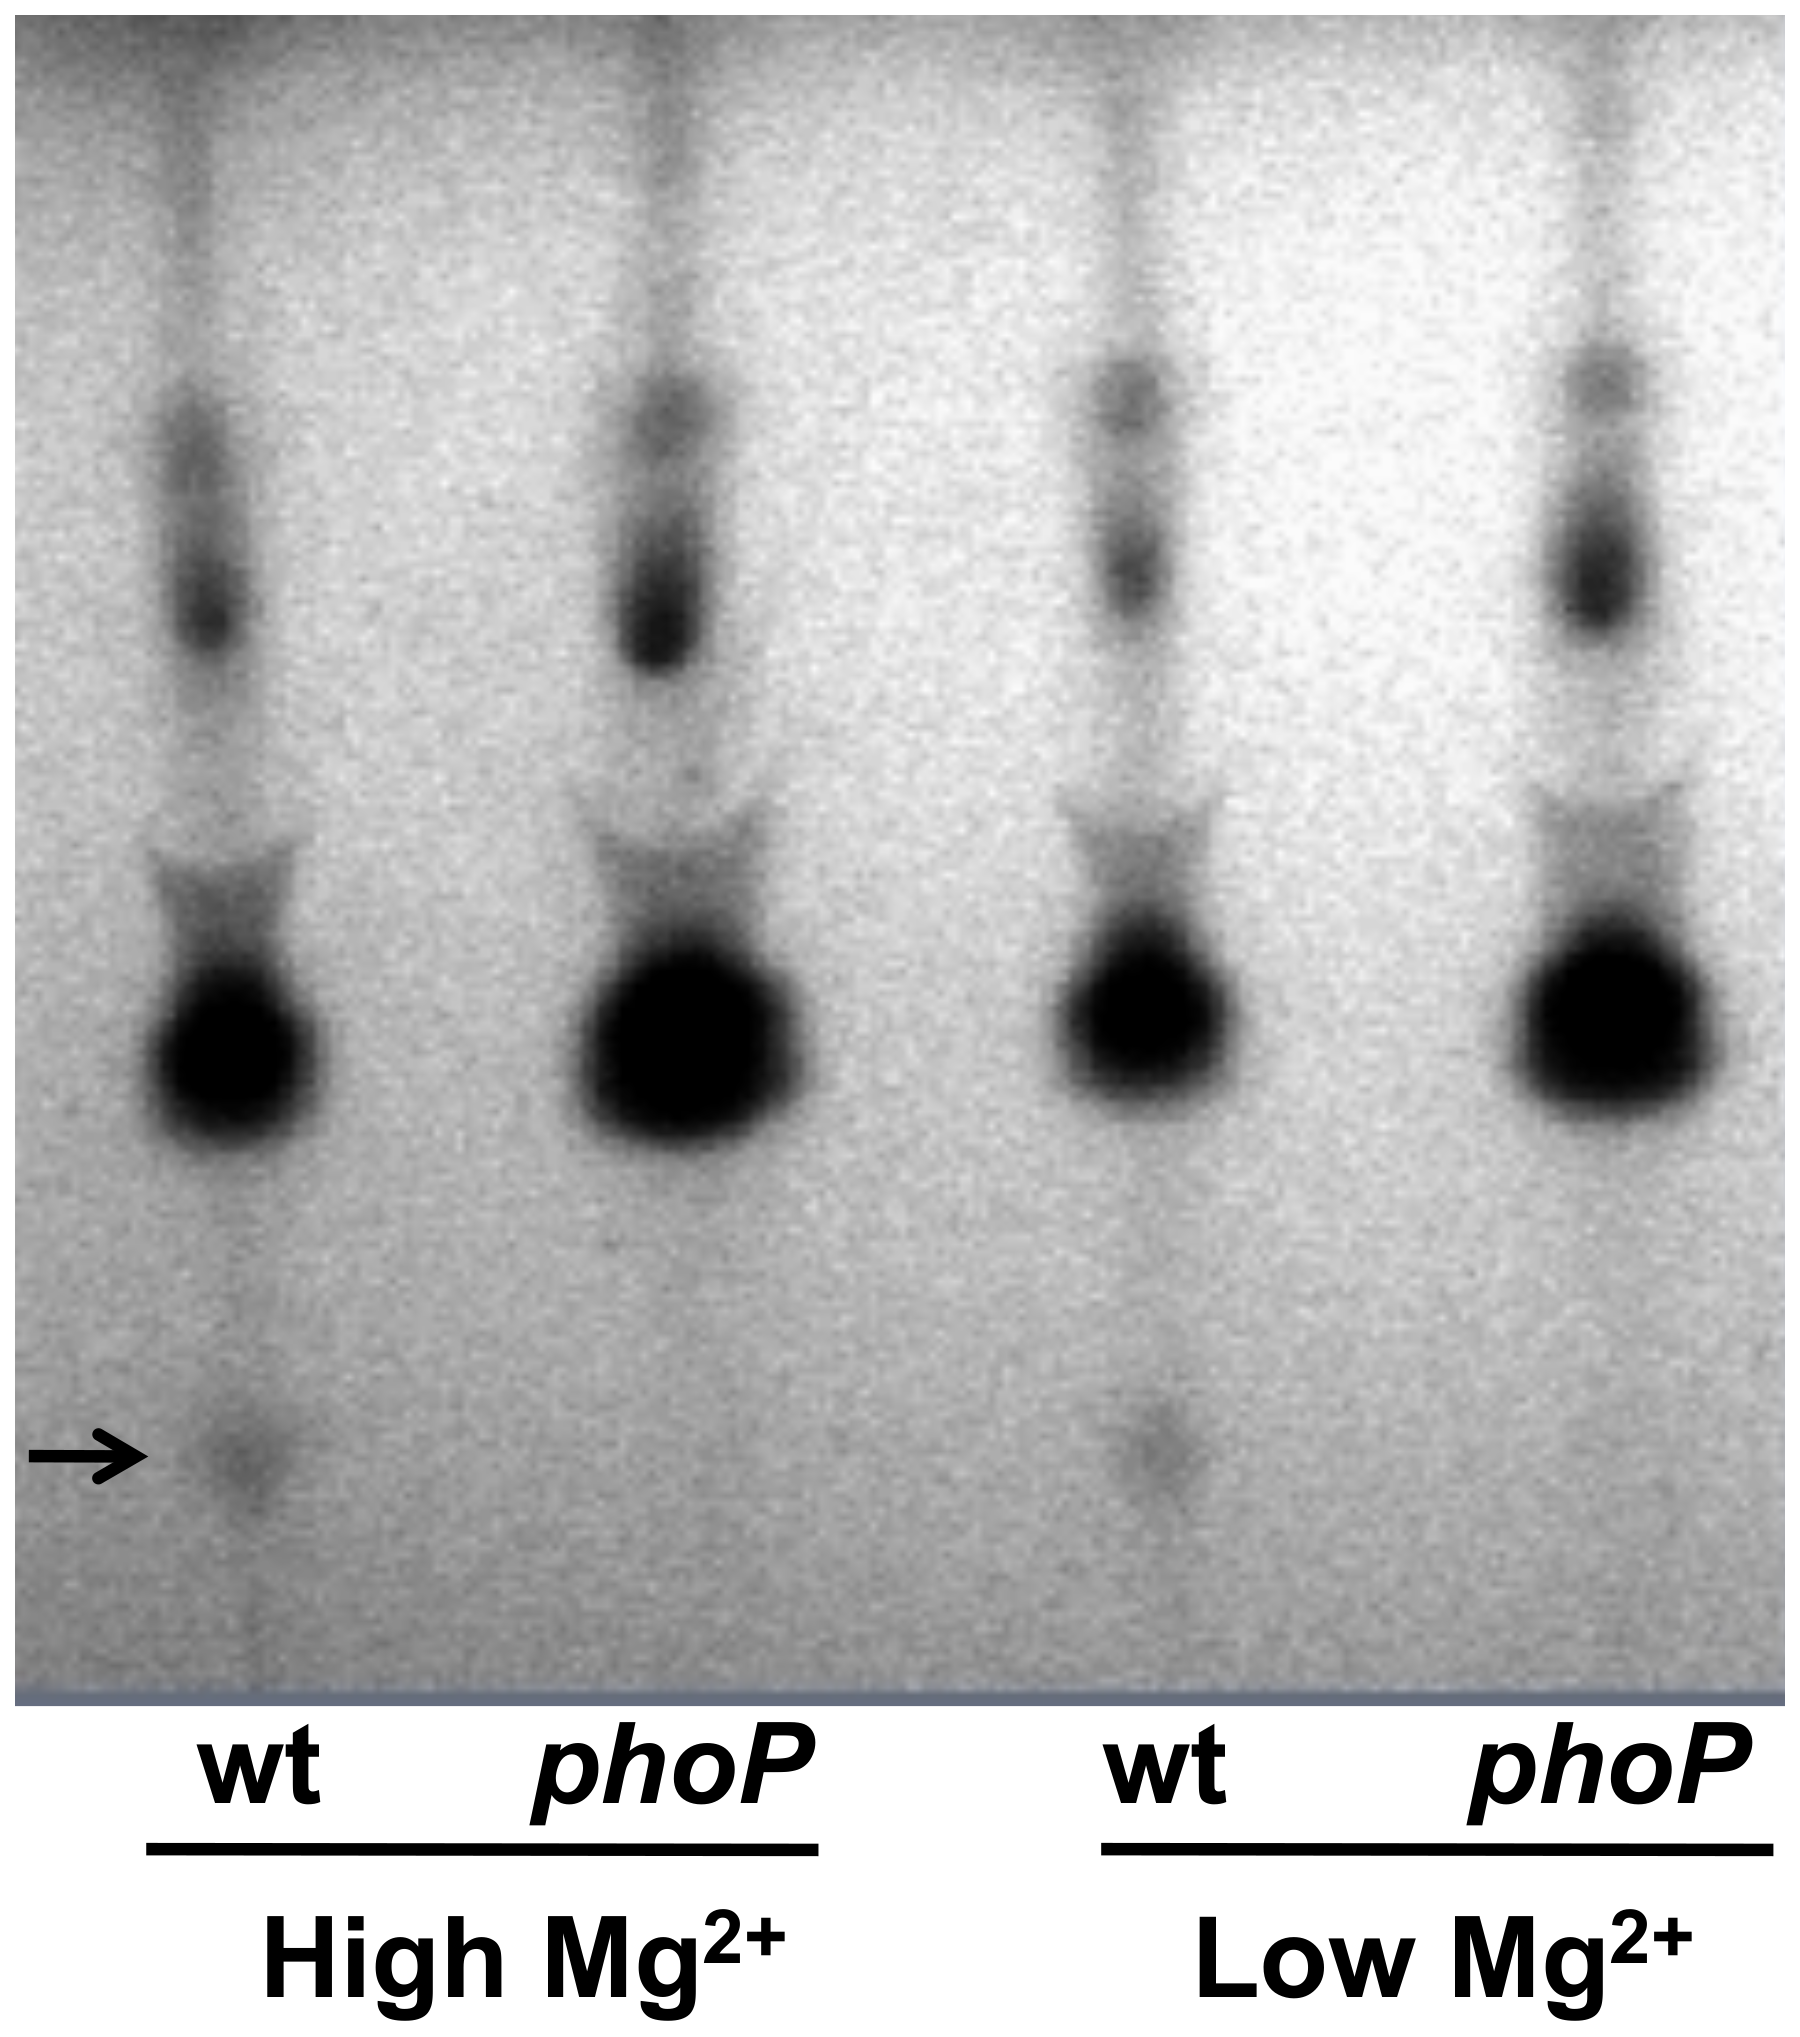 Thin layer chromatographic analysis of lipids extracted from wild type (wt) and <i>phoP</i> mutant strains of <i>S. glossinidius</i> grown at high (10 mM) and low (10 µM) concentrations of magnesium.